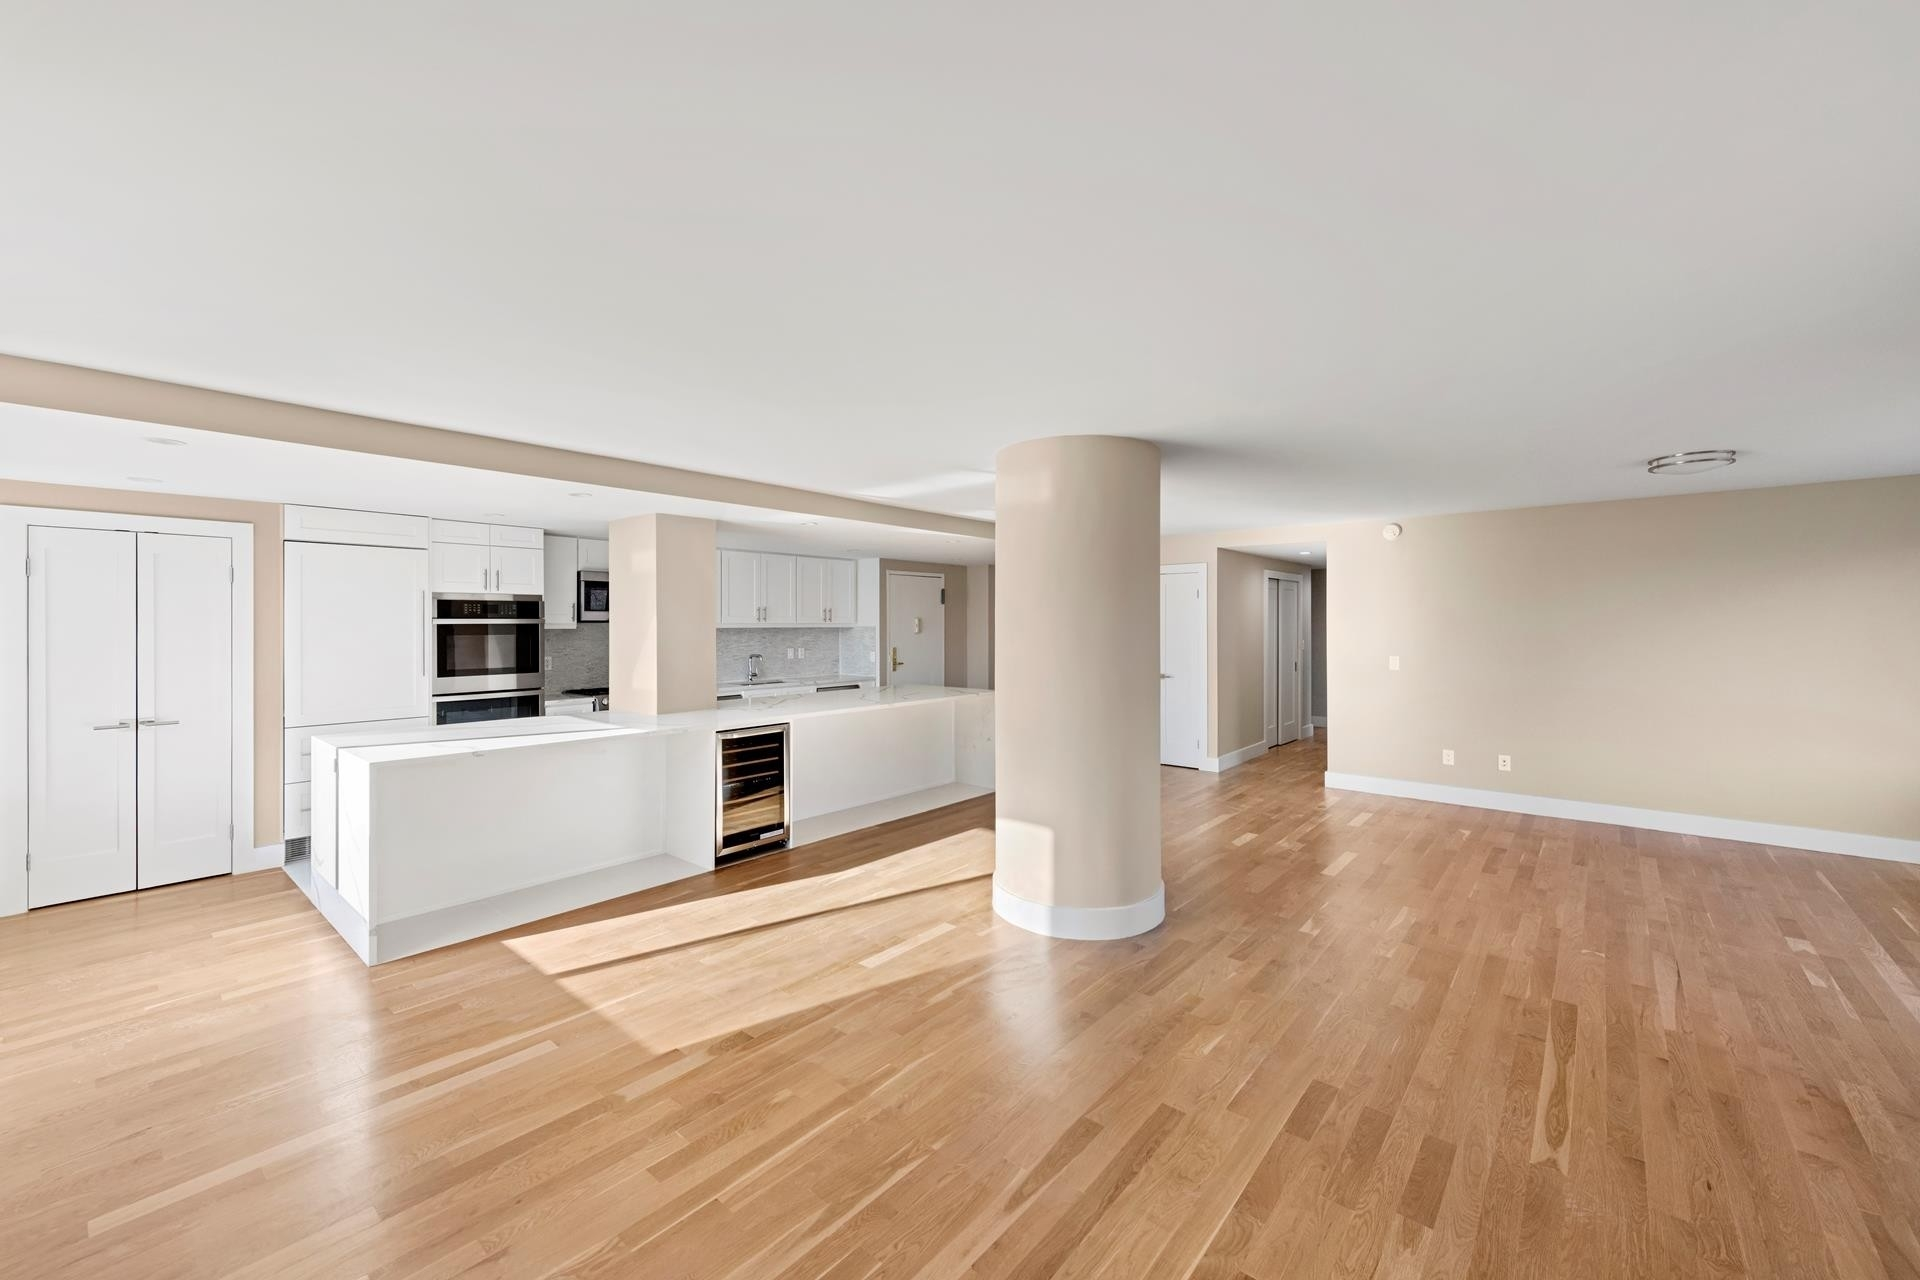 4. Condominiums for Sale at Vaux, The (Park Wes, 372 CENTRAL PARK W, 5BC Manhattan Valley, New York, NY 10025